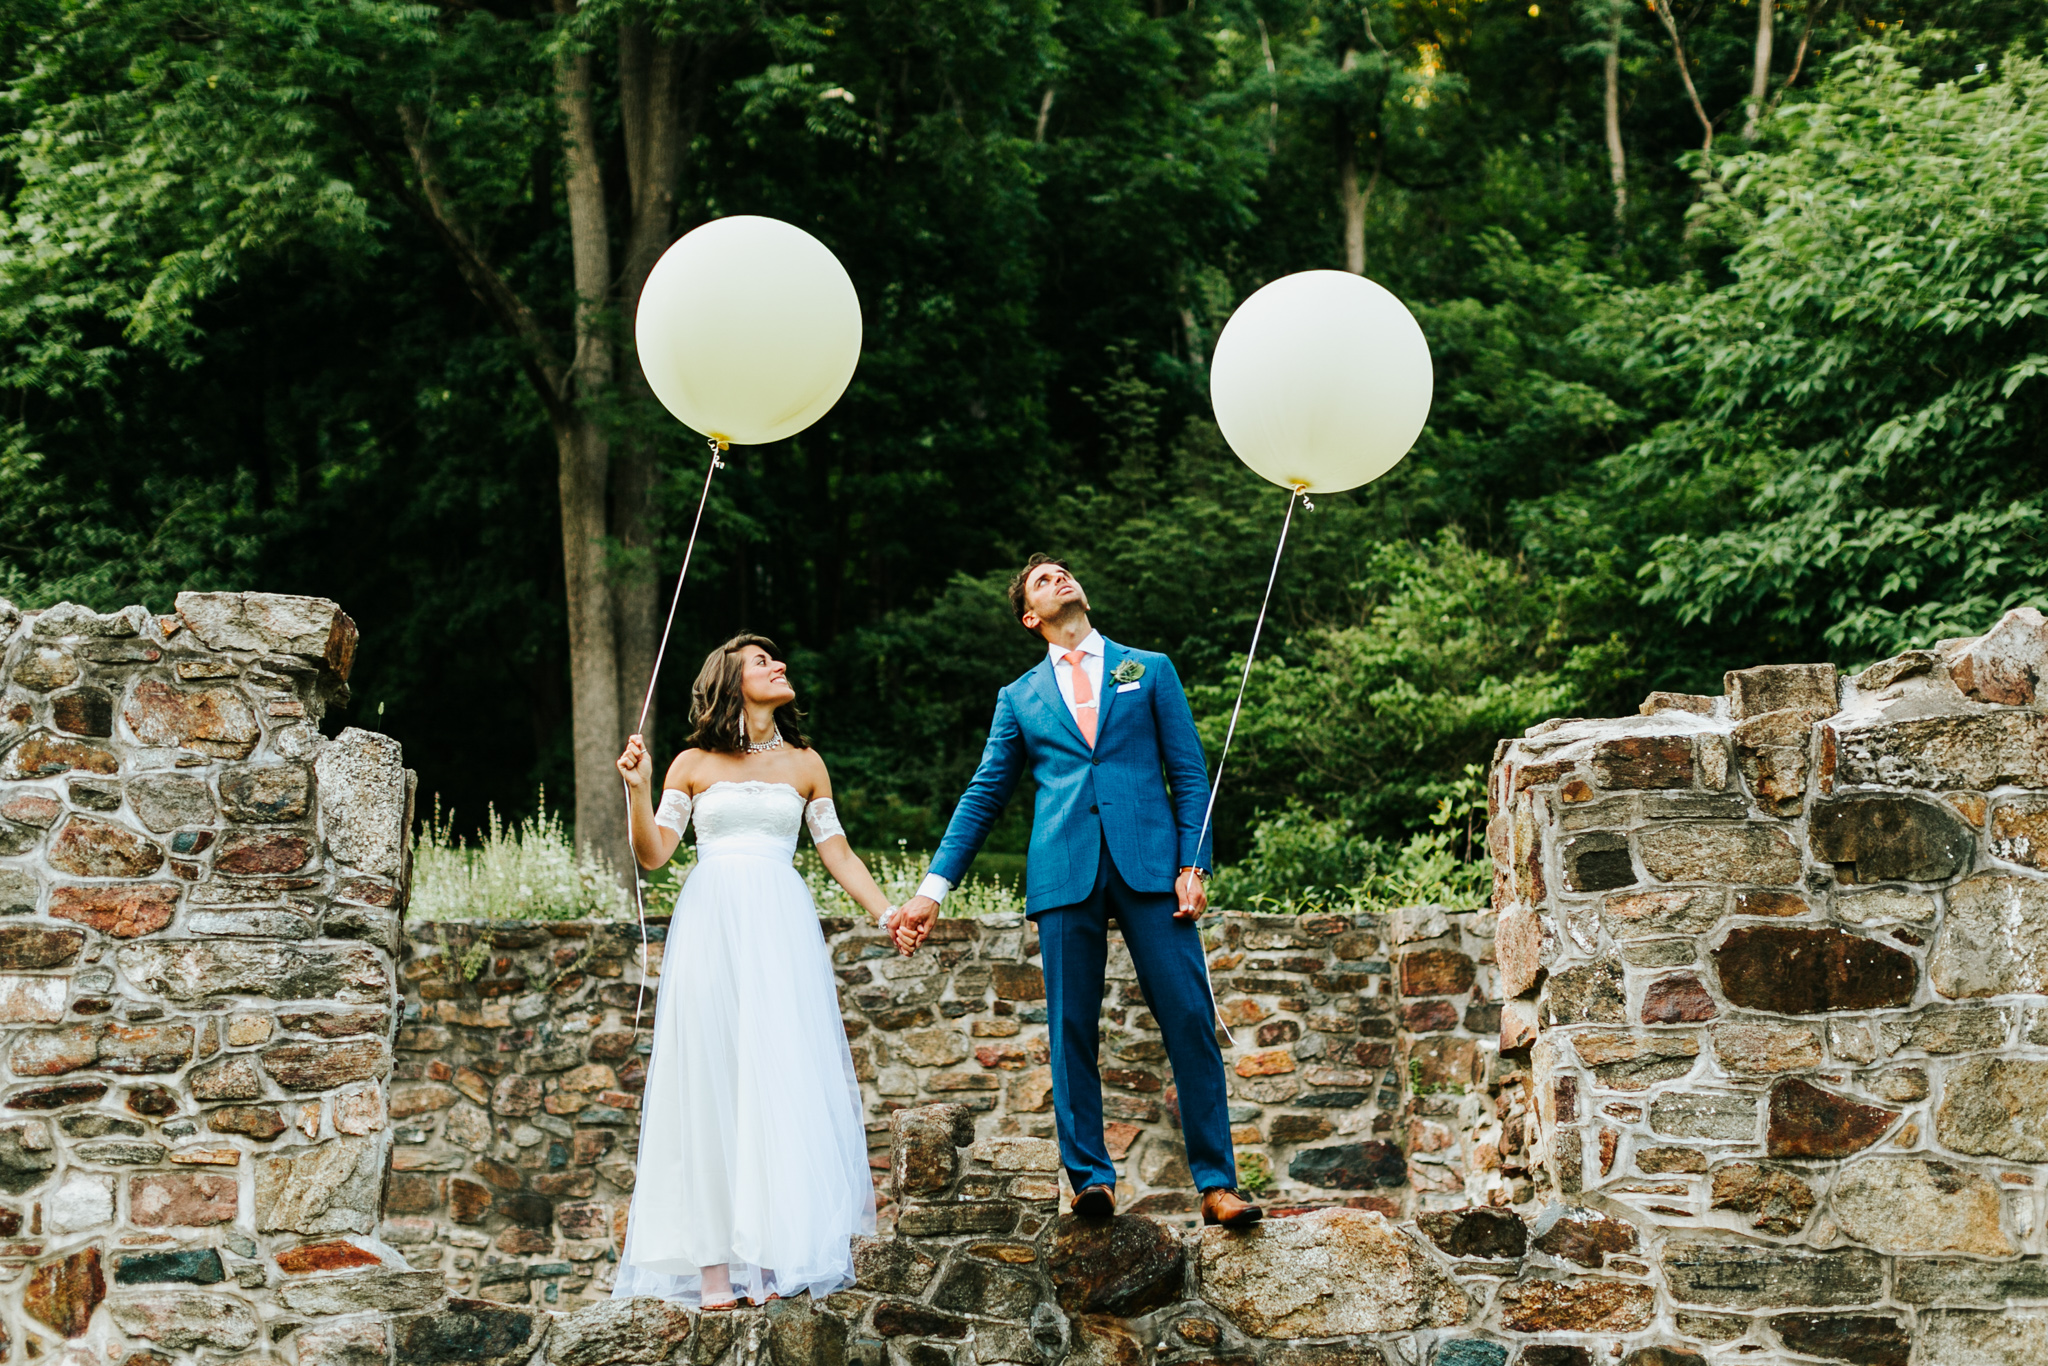 Historic Yellow Springs Wedding with DIY Details and Boho Vibe with Wedding Coordination by Heart & Dash Images by Danfredo-327.jpg